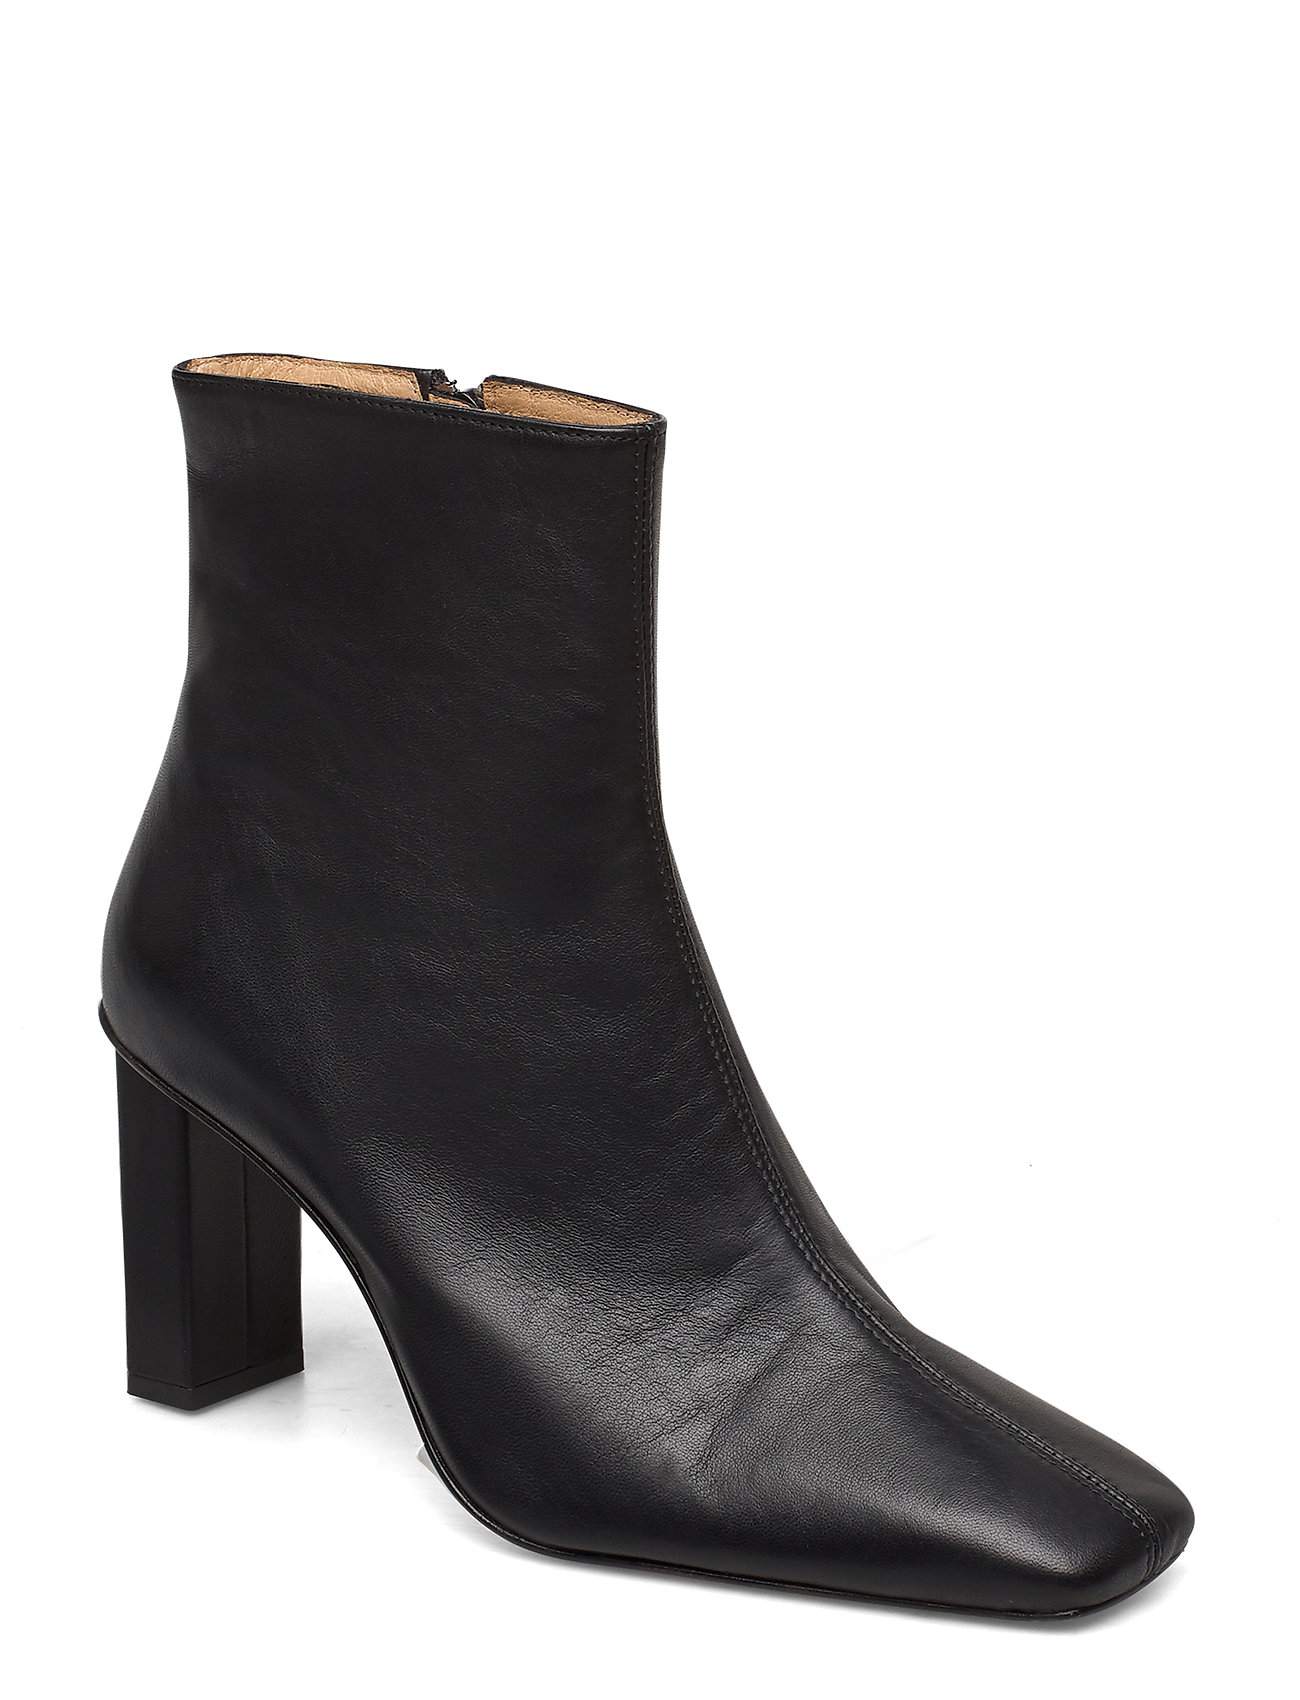 Image of Joan Le CarrÉ Ankle Boot Shoes Boots Ankle Boots Ankle Boot - Heel Sort ANNY NORD (3422268705)